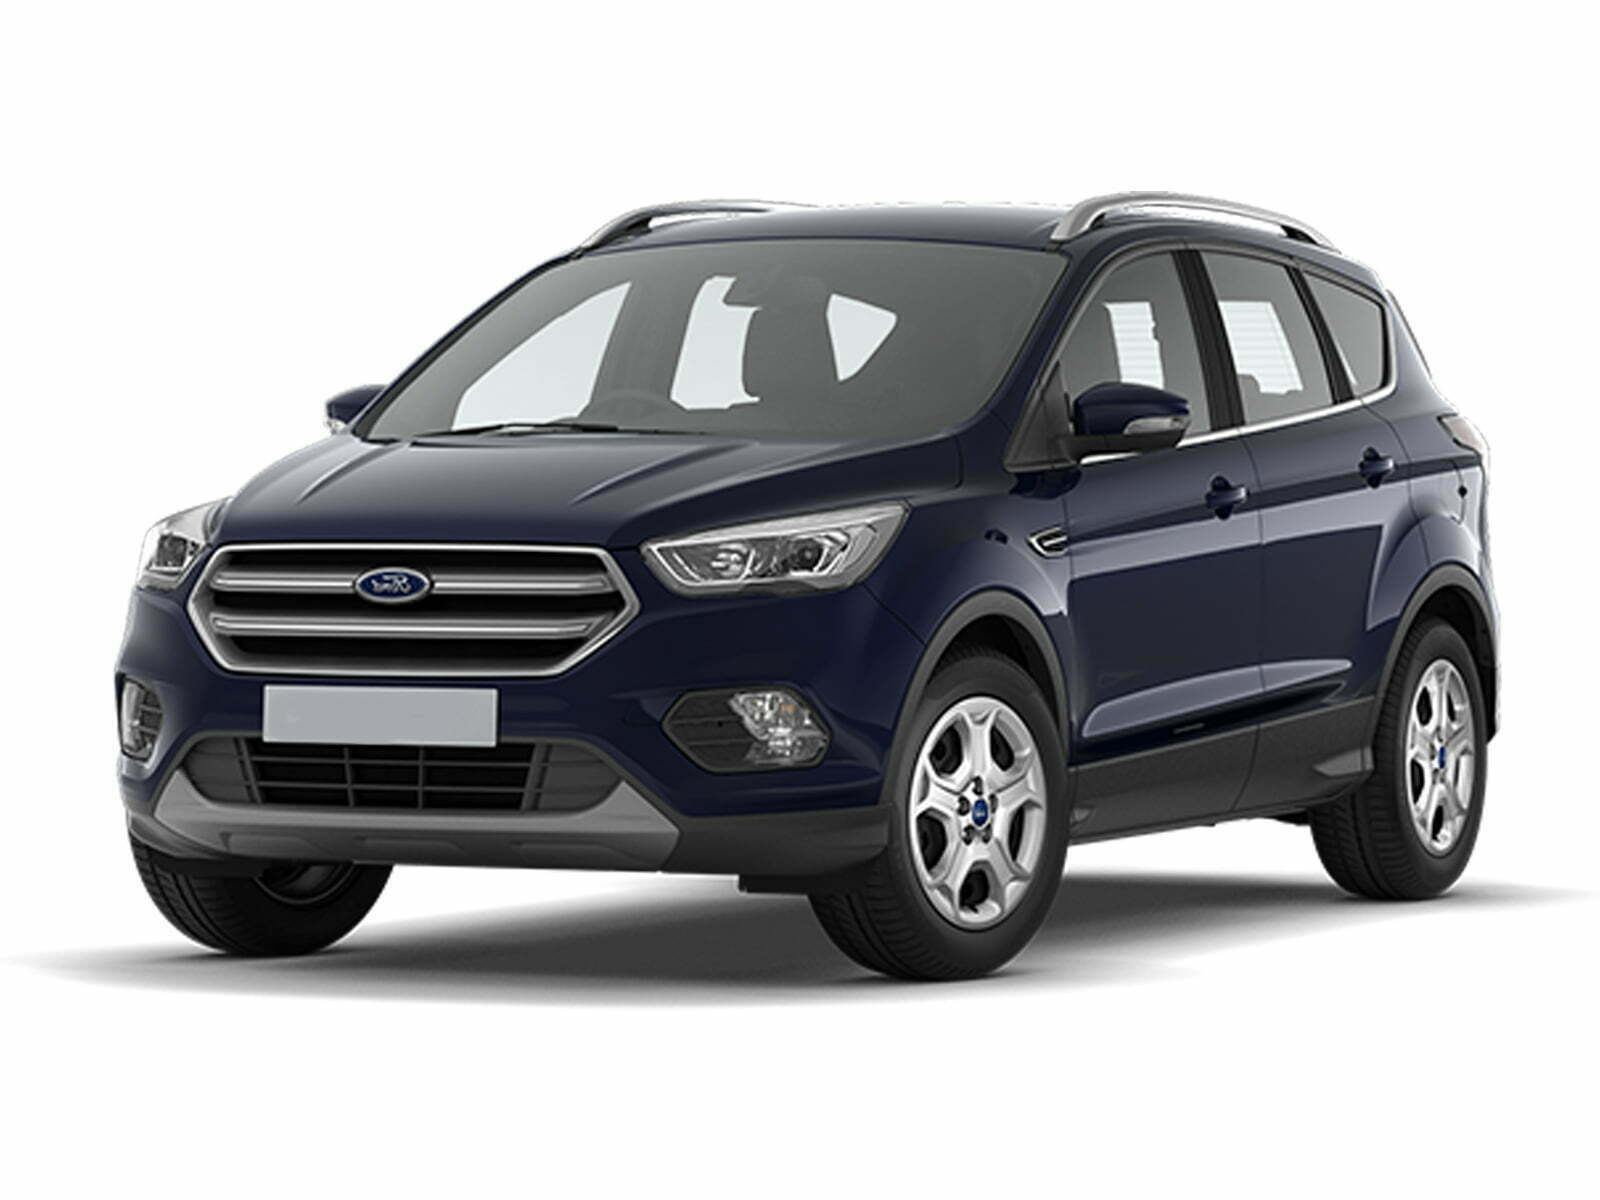 Ford Kuga Trend Ultimate 1.5 EcoBoost 88kW / 120pk 2WD 5d.